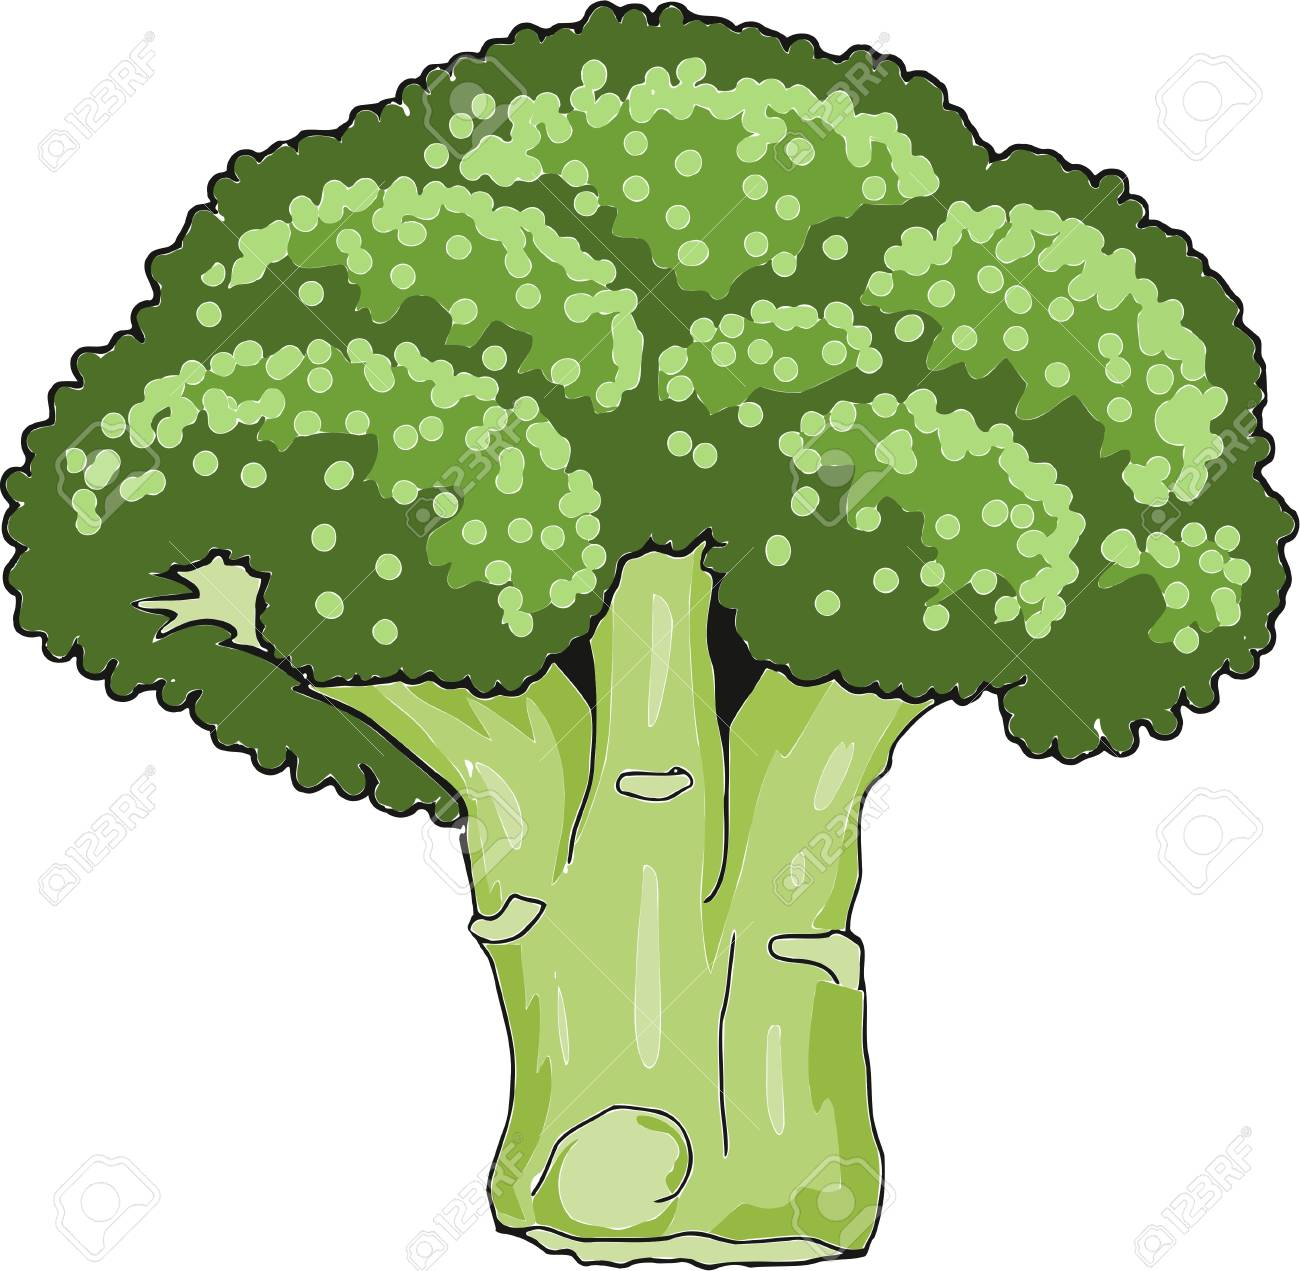 broccoli vector illustration isolated on white background royalty free cliparts vectors and stock illustration image 99015621 broccoli vector illustration isolated on white background